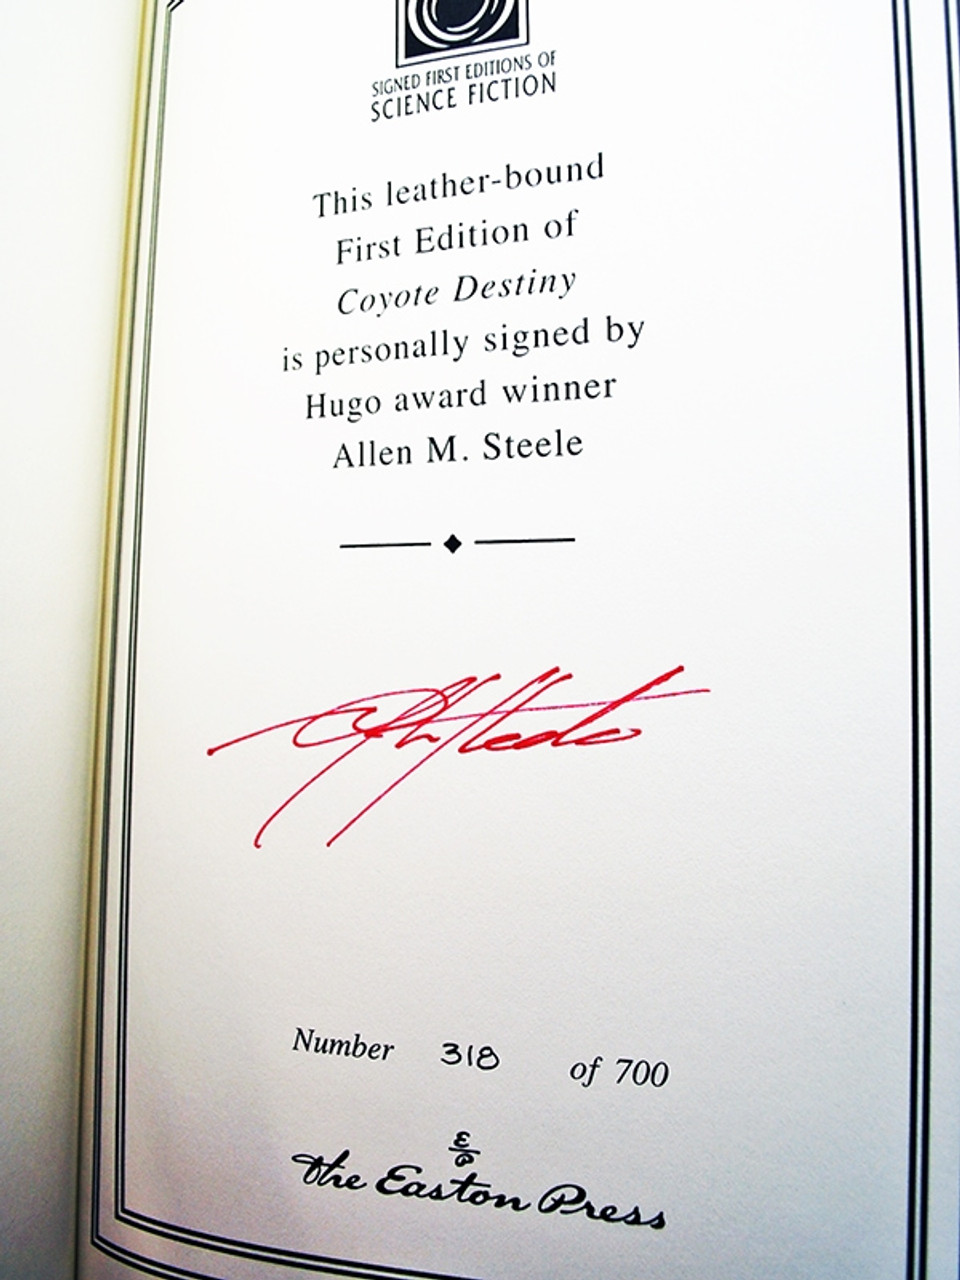 Easton Press, Allen Steele, The Coyote Trilogy Books, Signed First Edition 4 Volume Set w/COA [Very Fine]